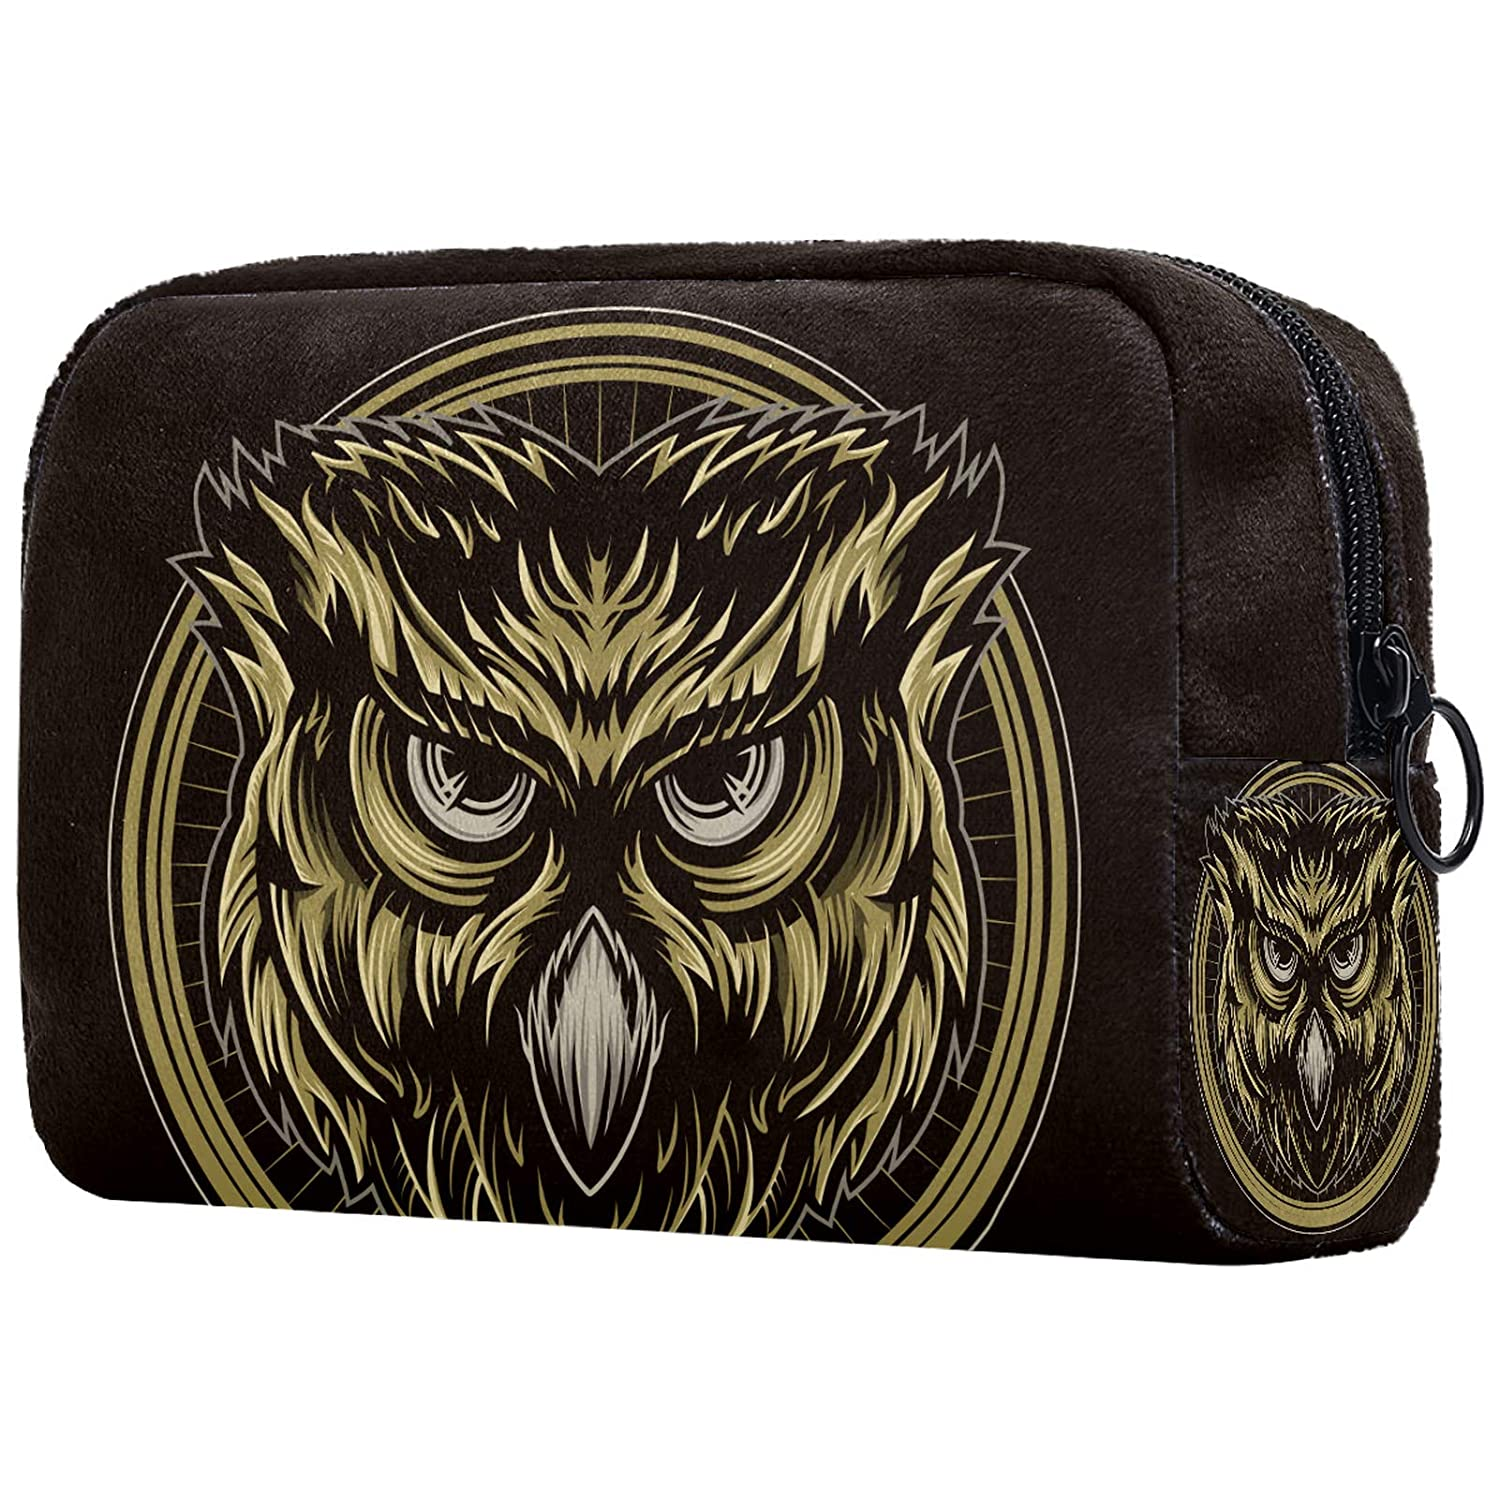 Toiletry Bags Lovely Small Makeup Bag for Purse Travel Makeup Pouch Mini Cosmetic Bag for Women Girls brown circle owl 7.3x3x5.1in